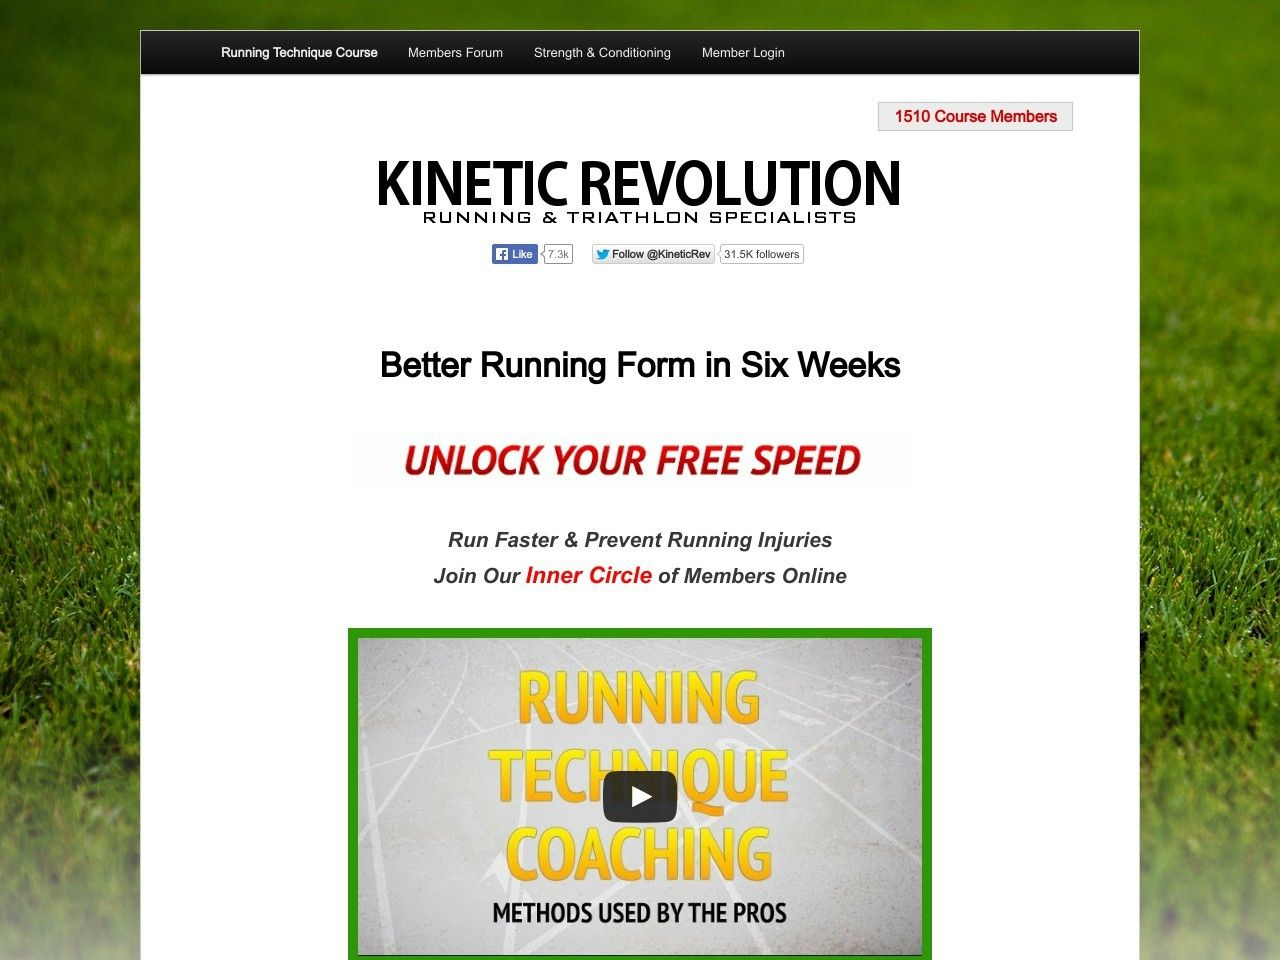 Online Running Form Course By Kinetic Revolution Review Get Full Review : http://landing-squeeze.com/u4-org/online-running-form-course-by-kinetic-revolution/